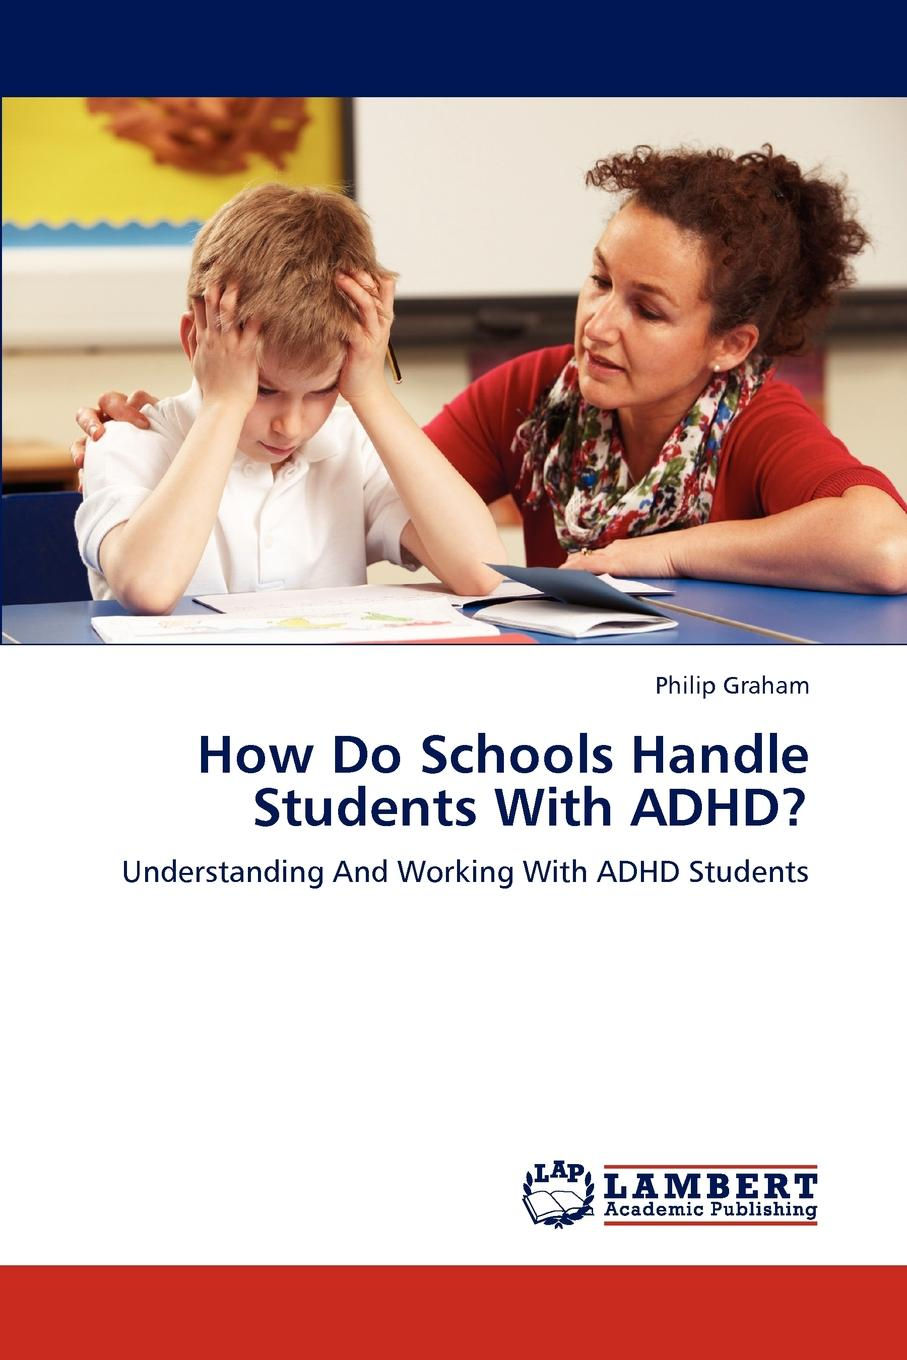 Philip Graham How Do Schools Handle Students With ADHD. symptoms of autism in adhd a familial trait